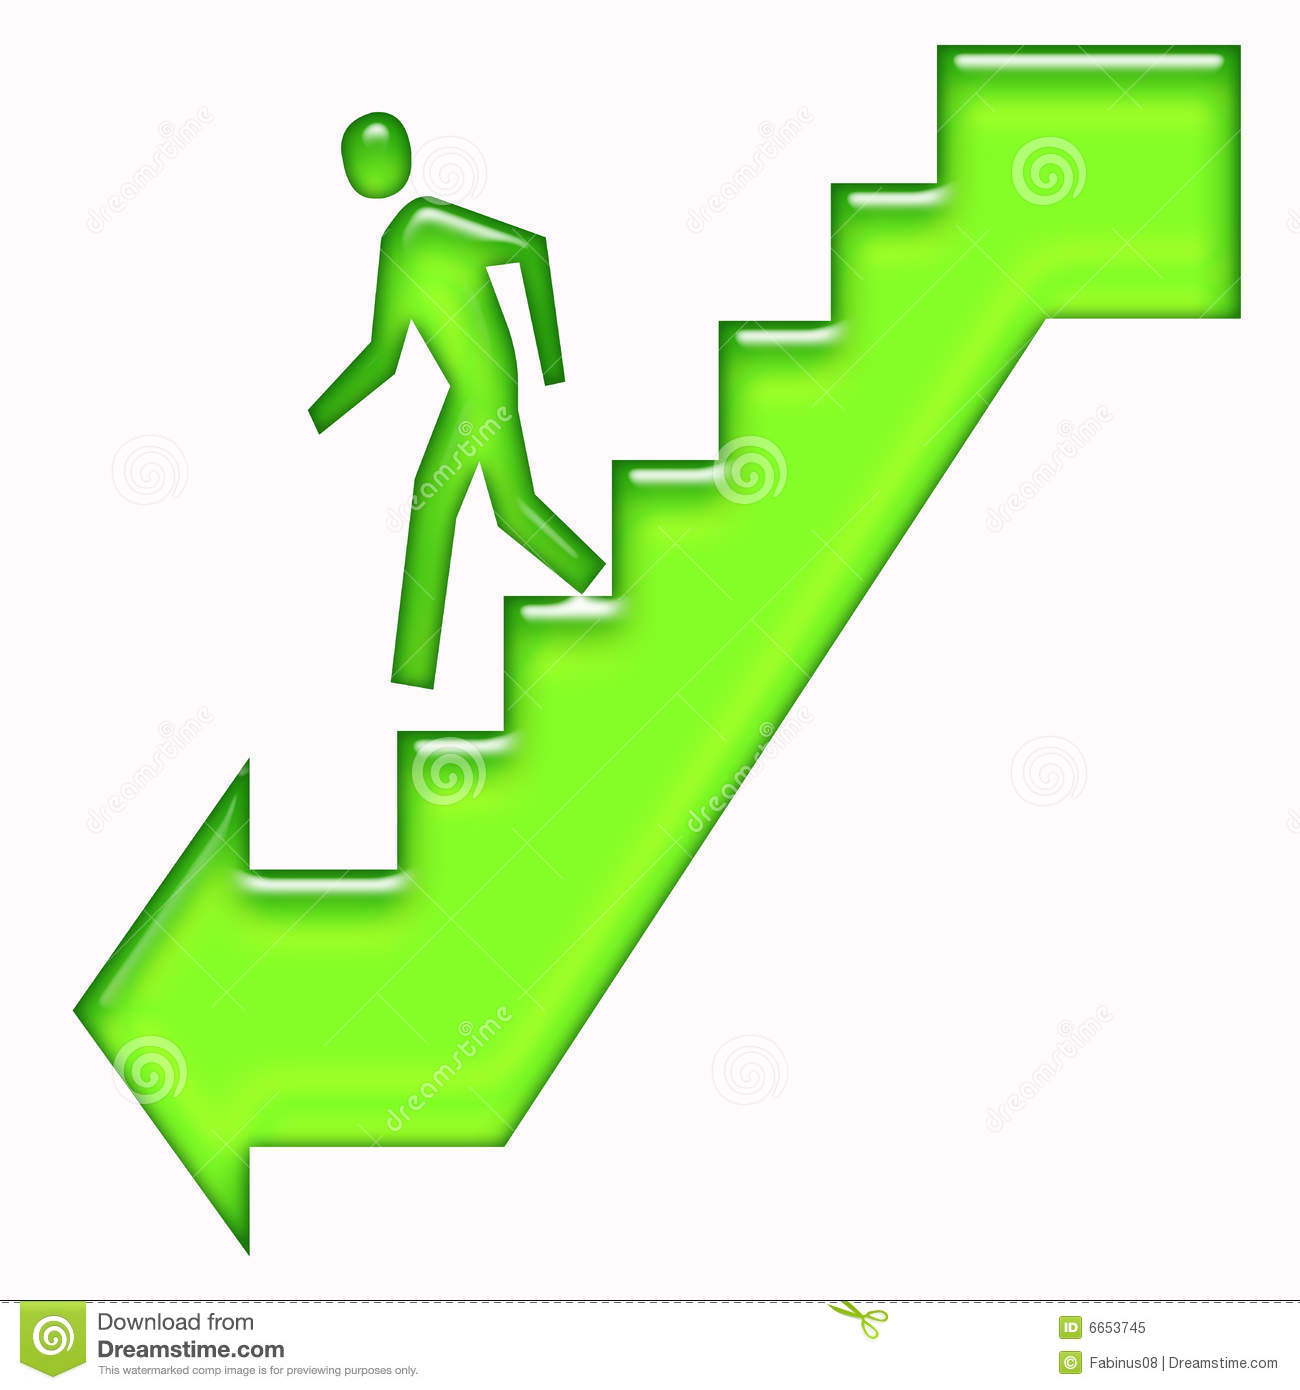 Downstairs Clipart Free Clip Art Images #3k9d5g.